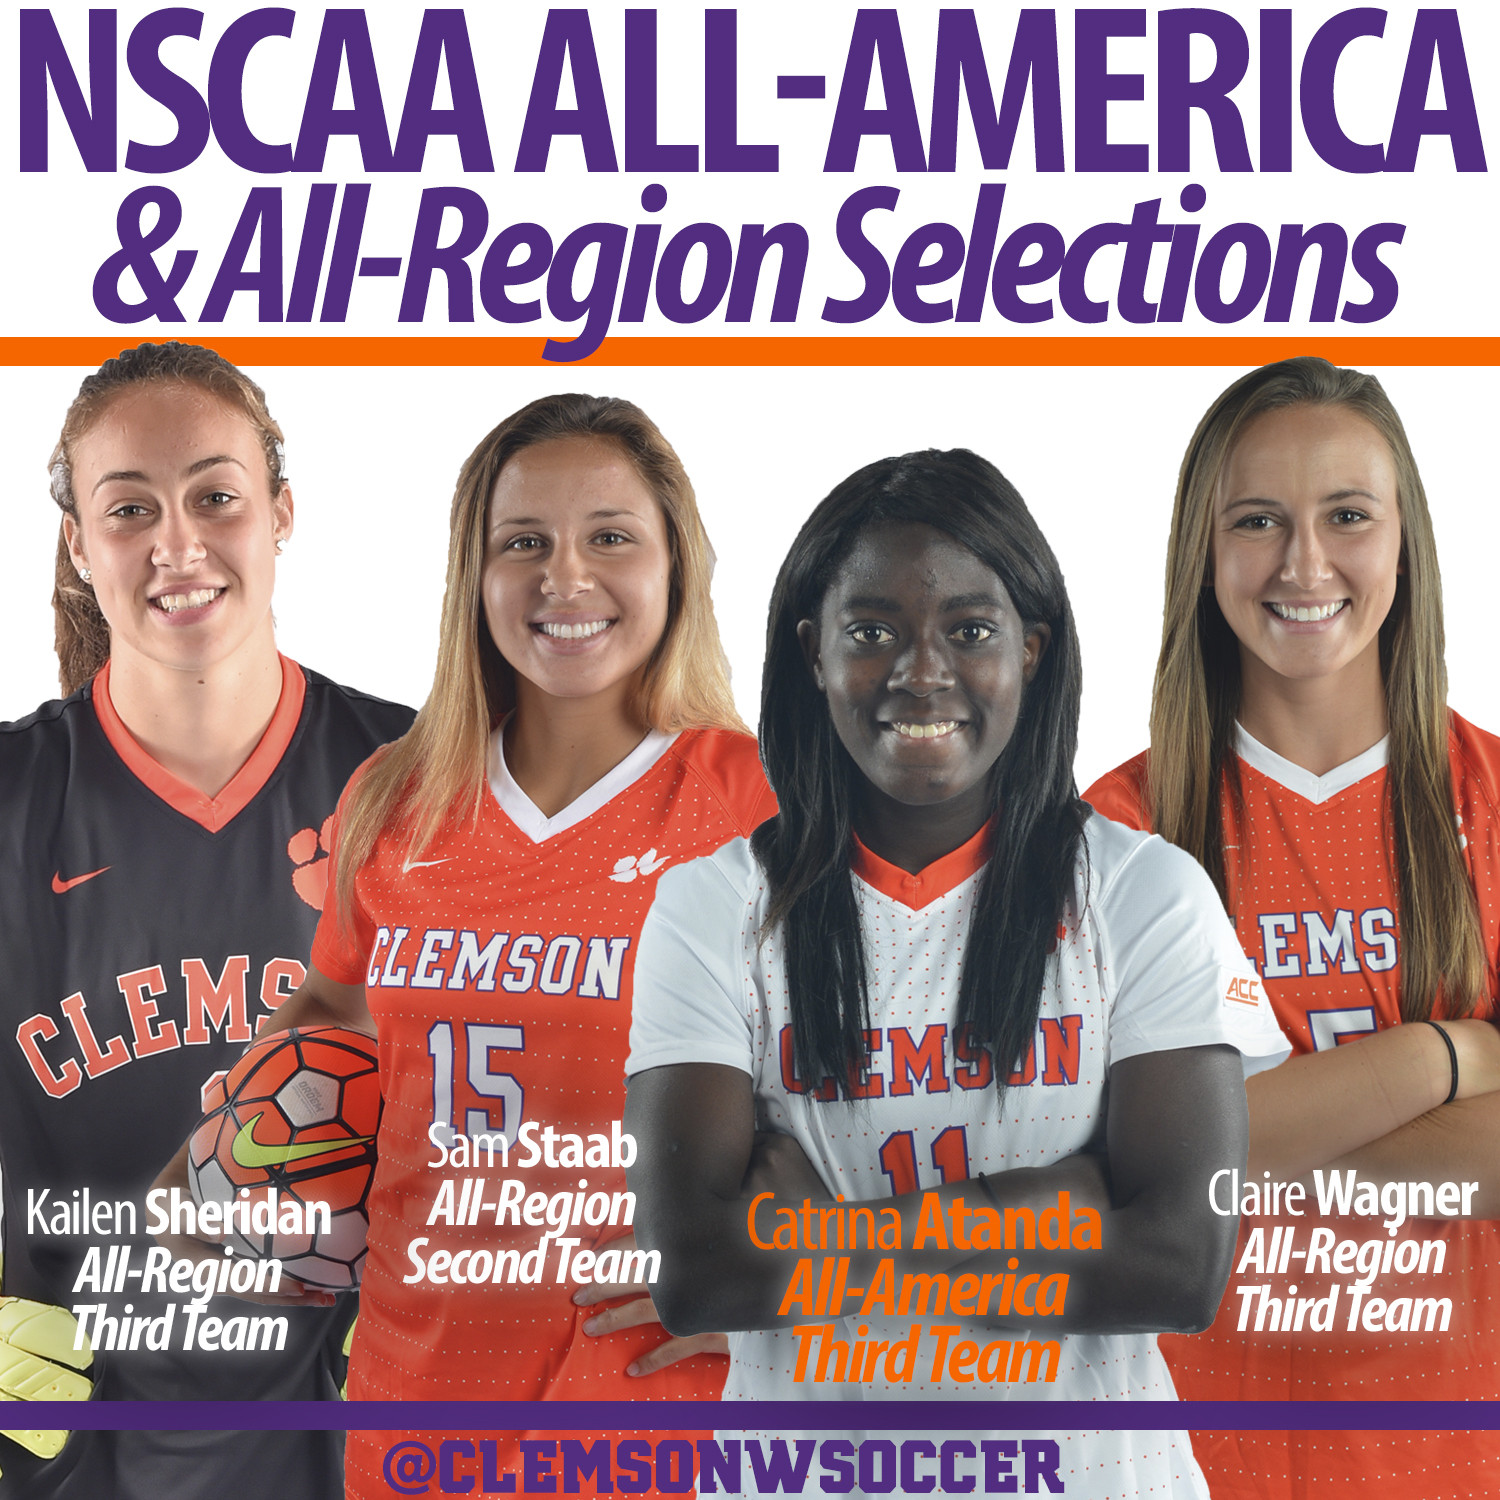 Atanda Earns NSCAA All-America Honors, Three Other Tigers Named All-Region